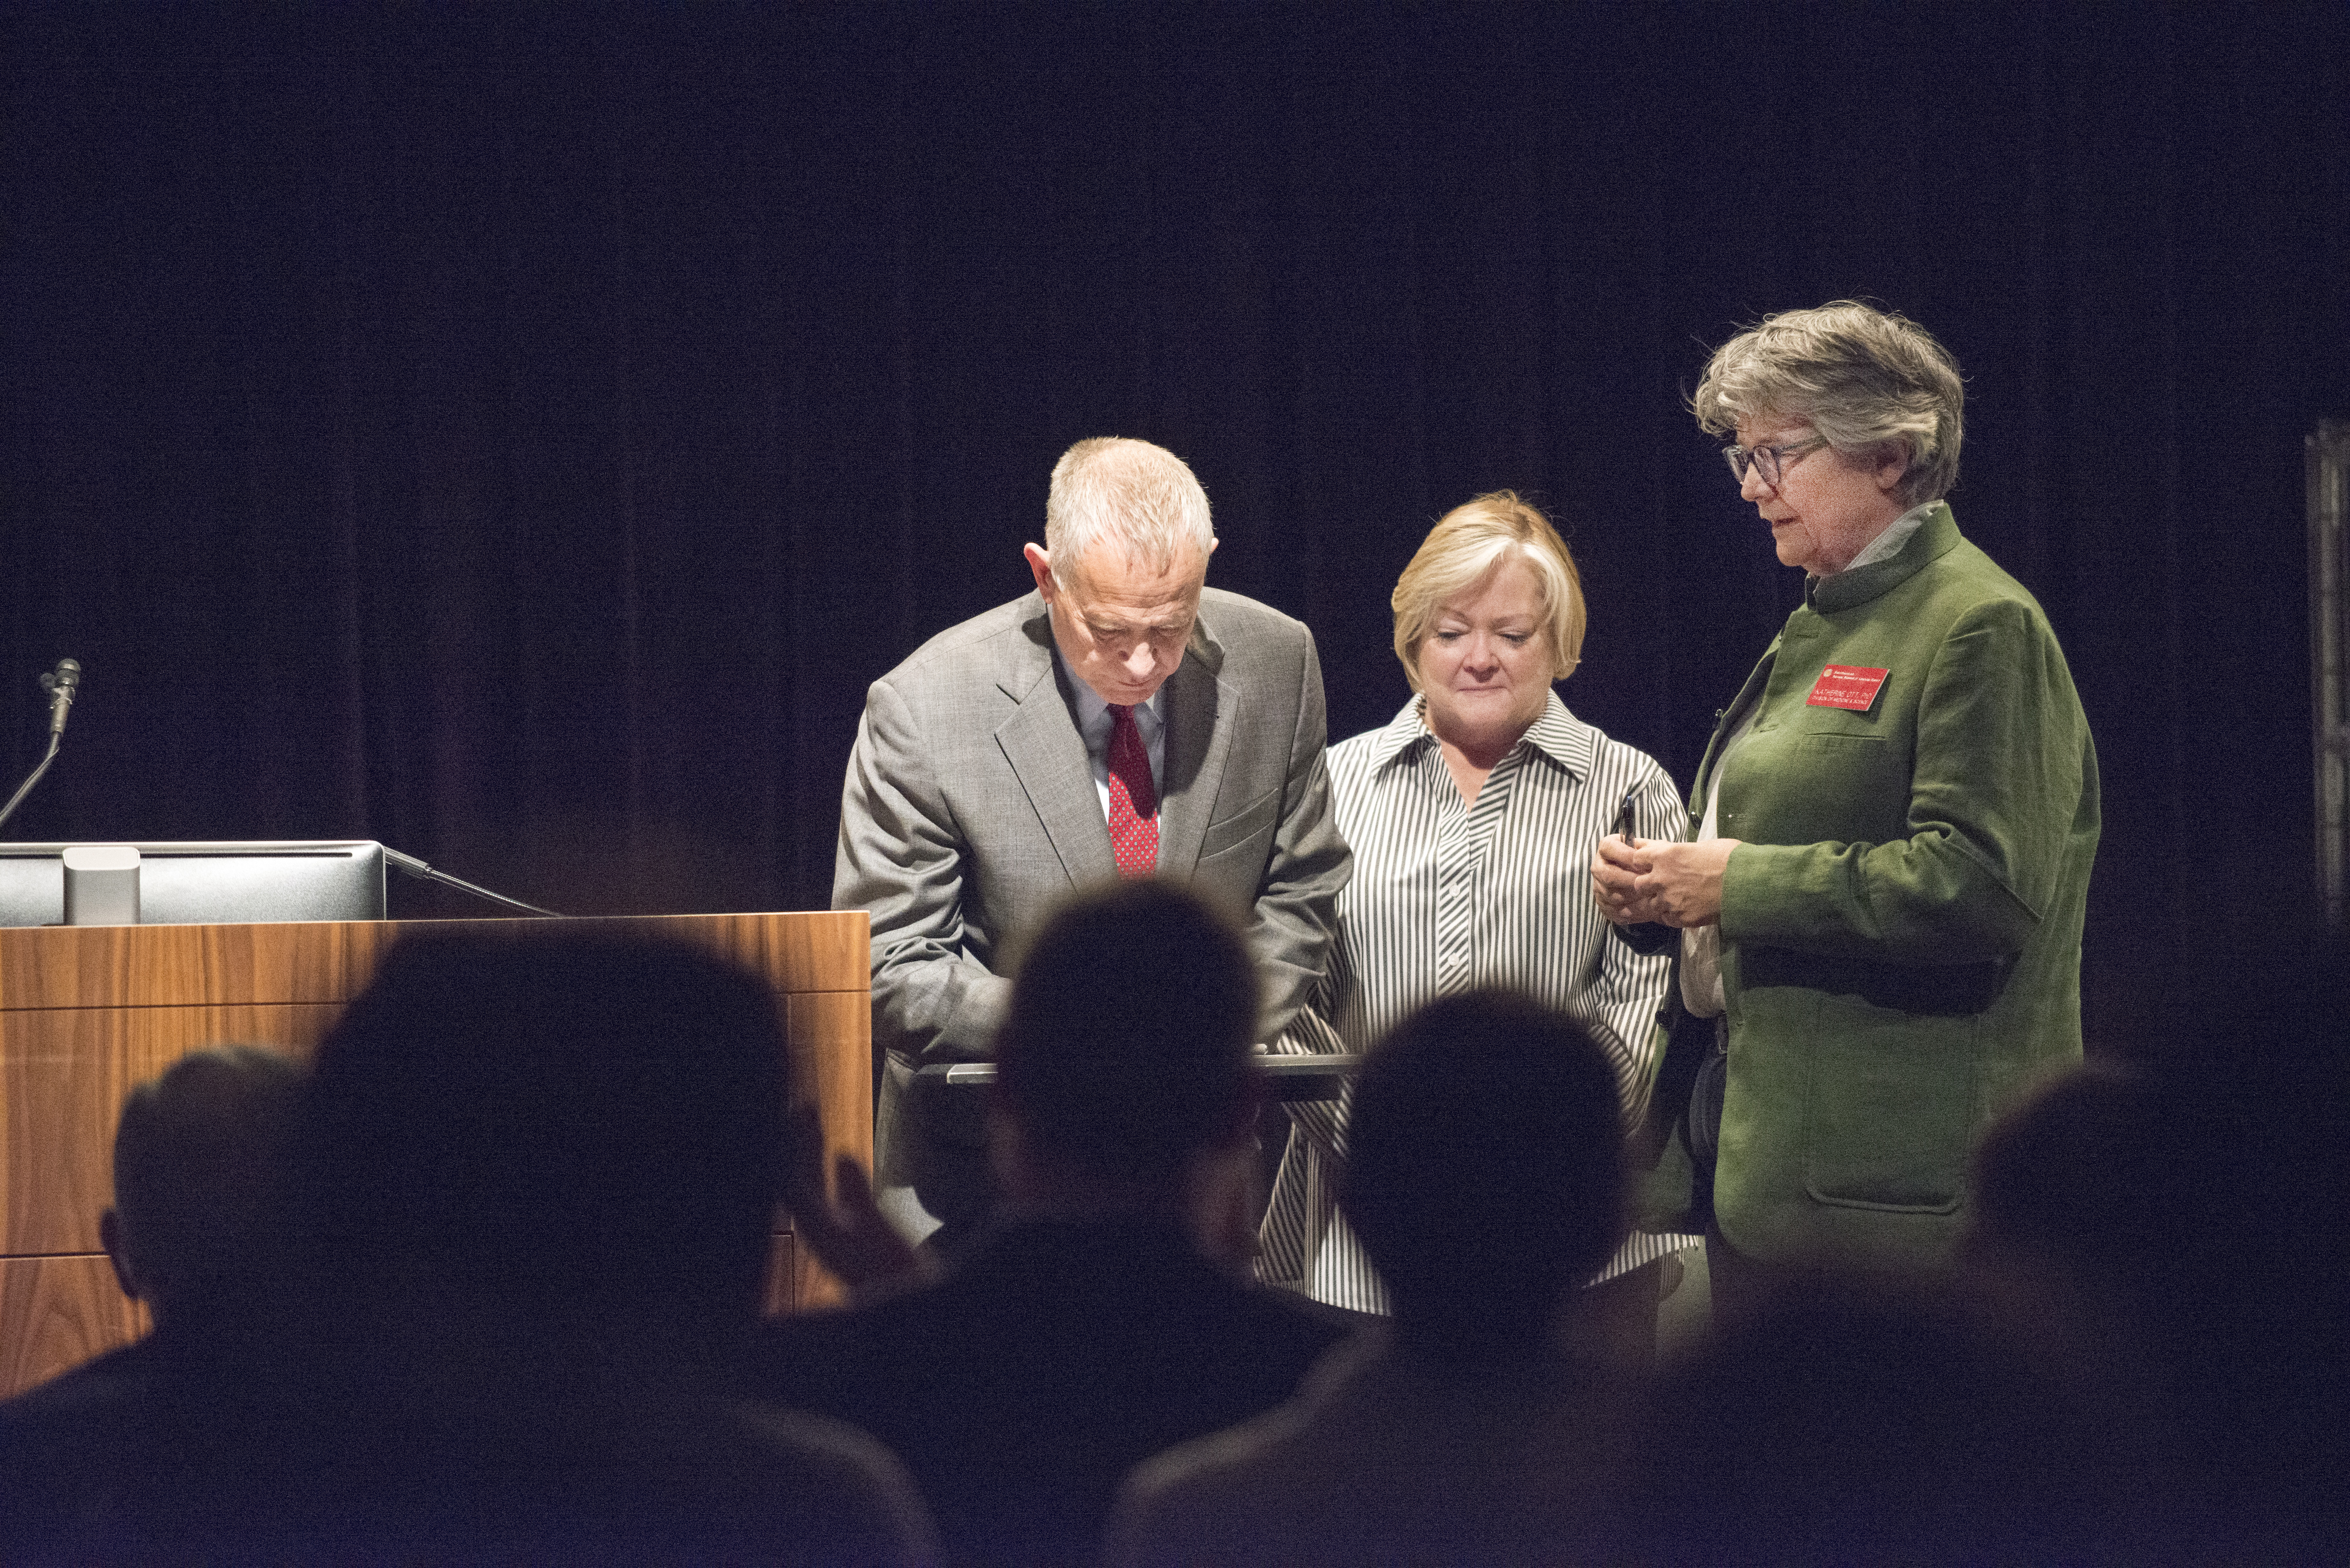 Three people on a stage, one man and two women. Solemn expressions. The man signs a document while the women look on. Black curtain behind them.